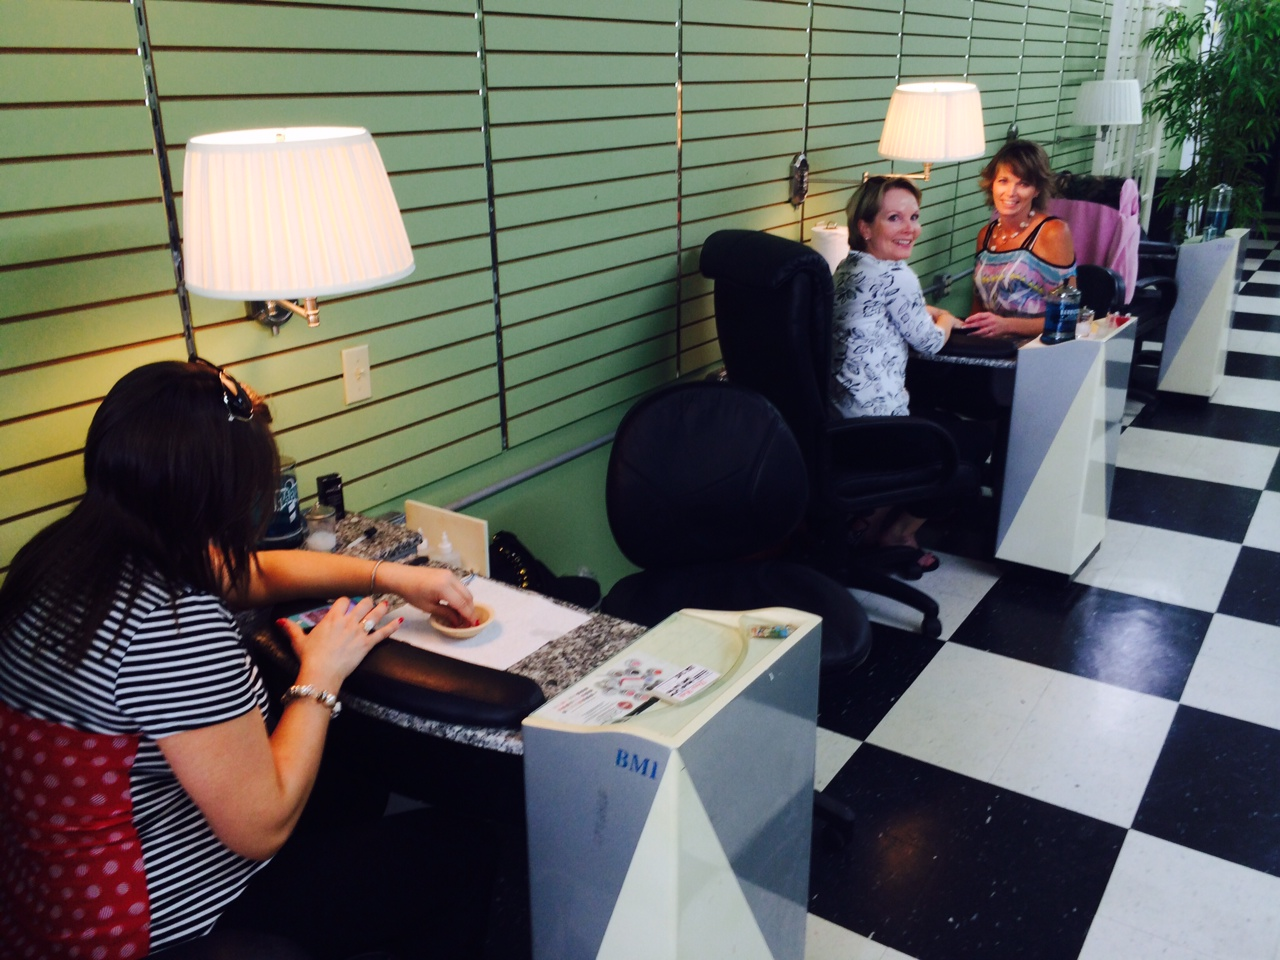 Oxfords Paris Nails Moves To New Location Expands Services